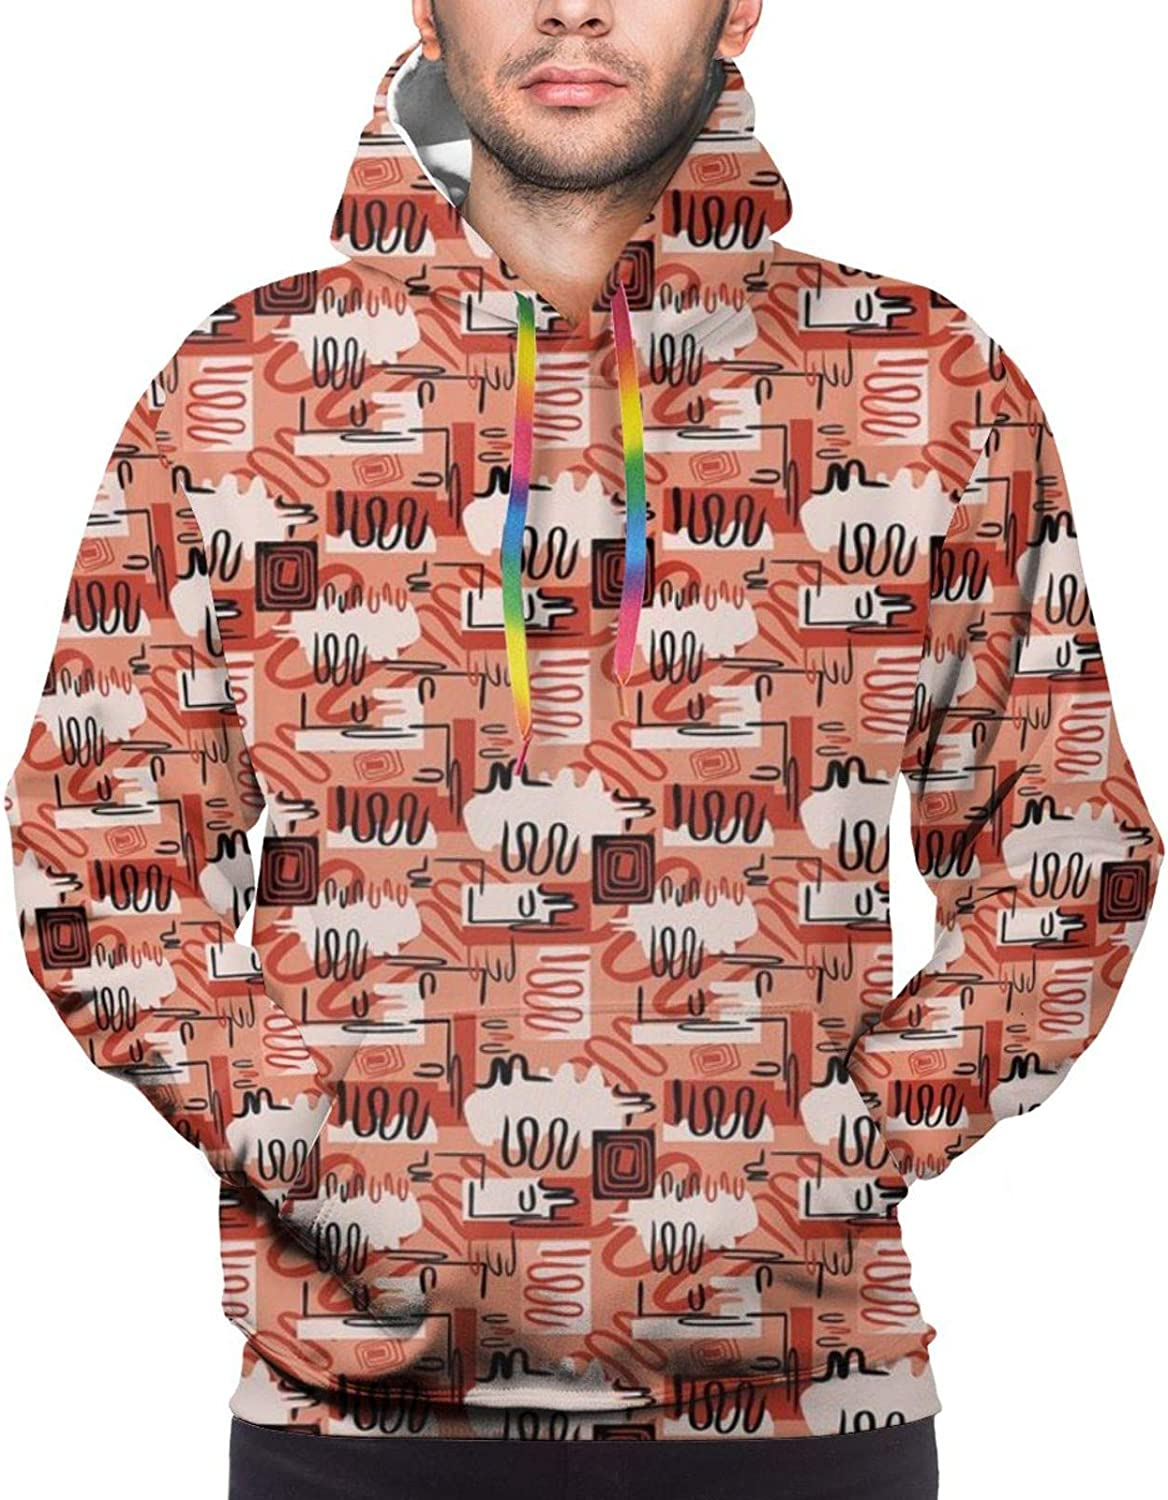 Men's Hoodies Sweatshirts,Abstract Art with Swirled Lines and Hand Drawn Curves Geometric Illustration,Small